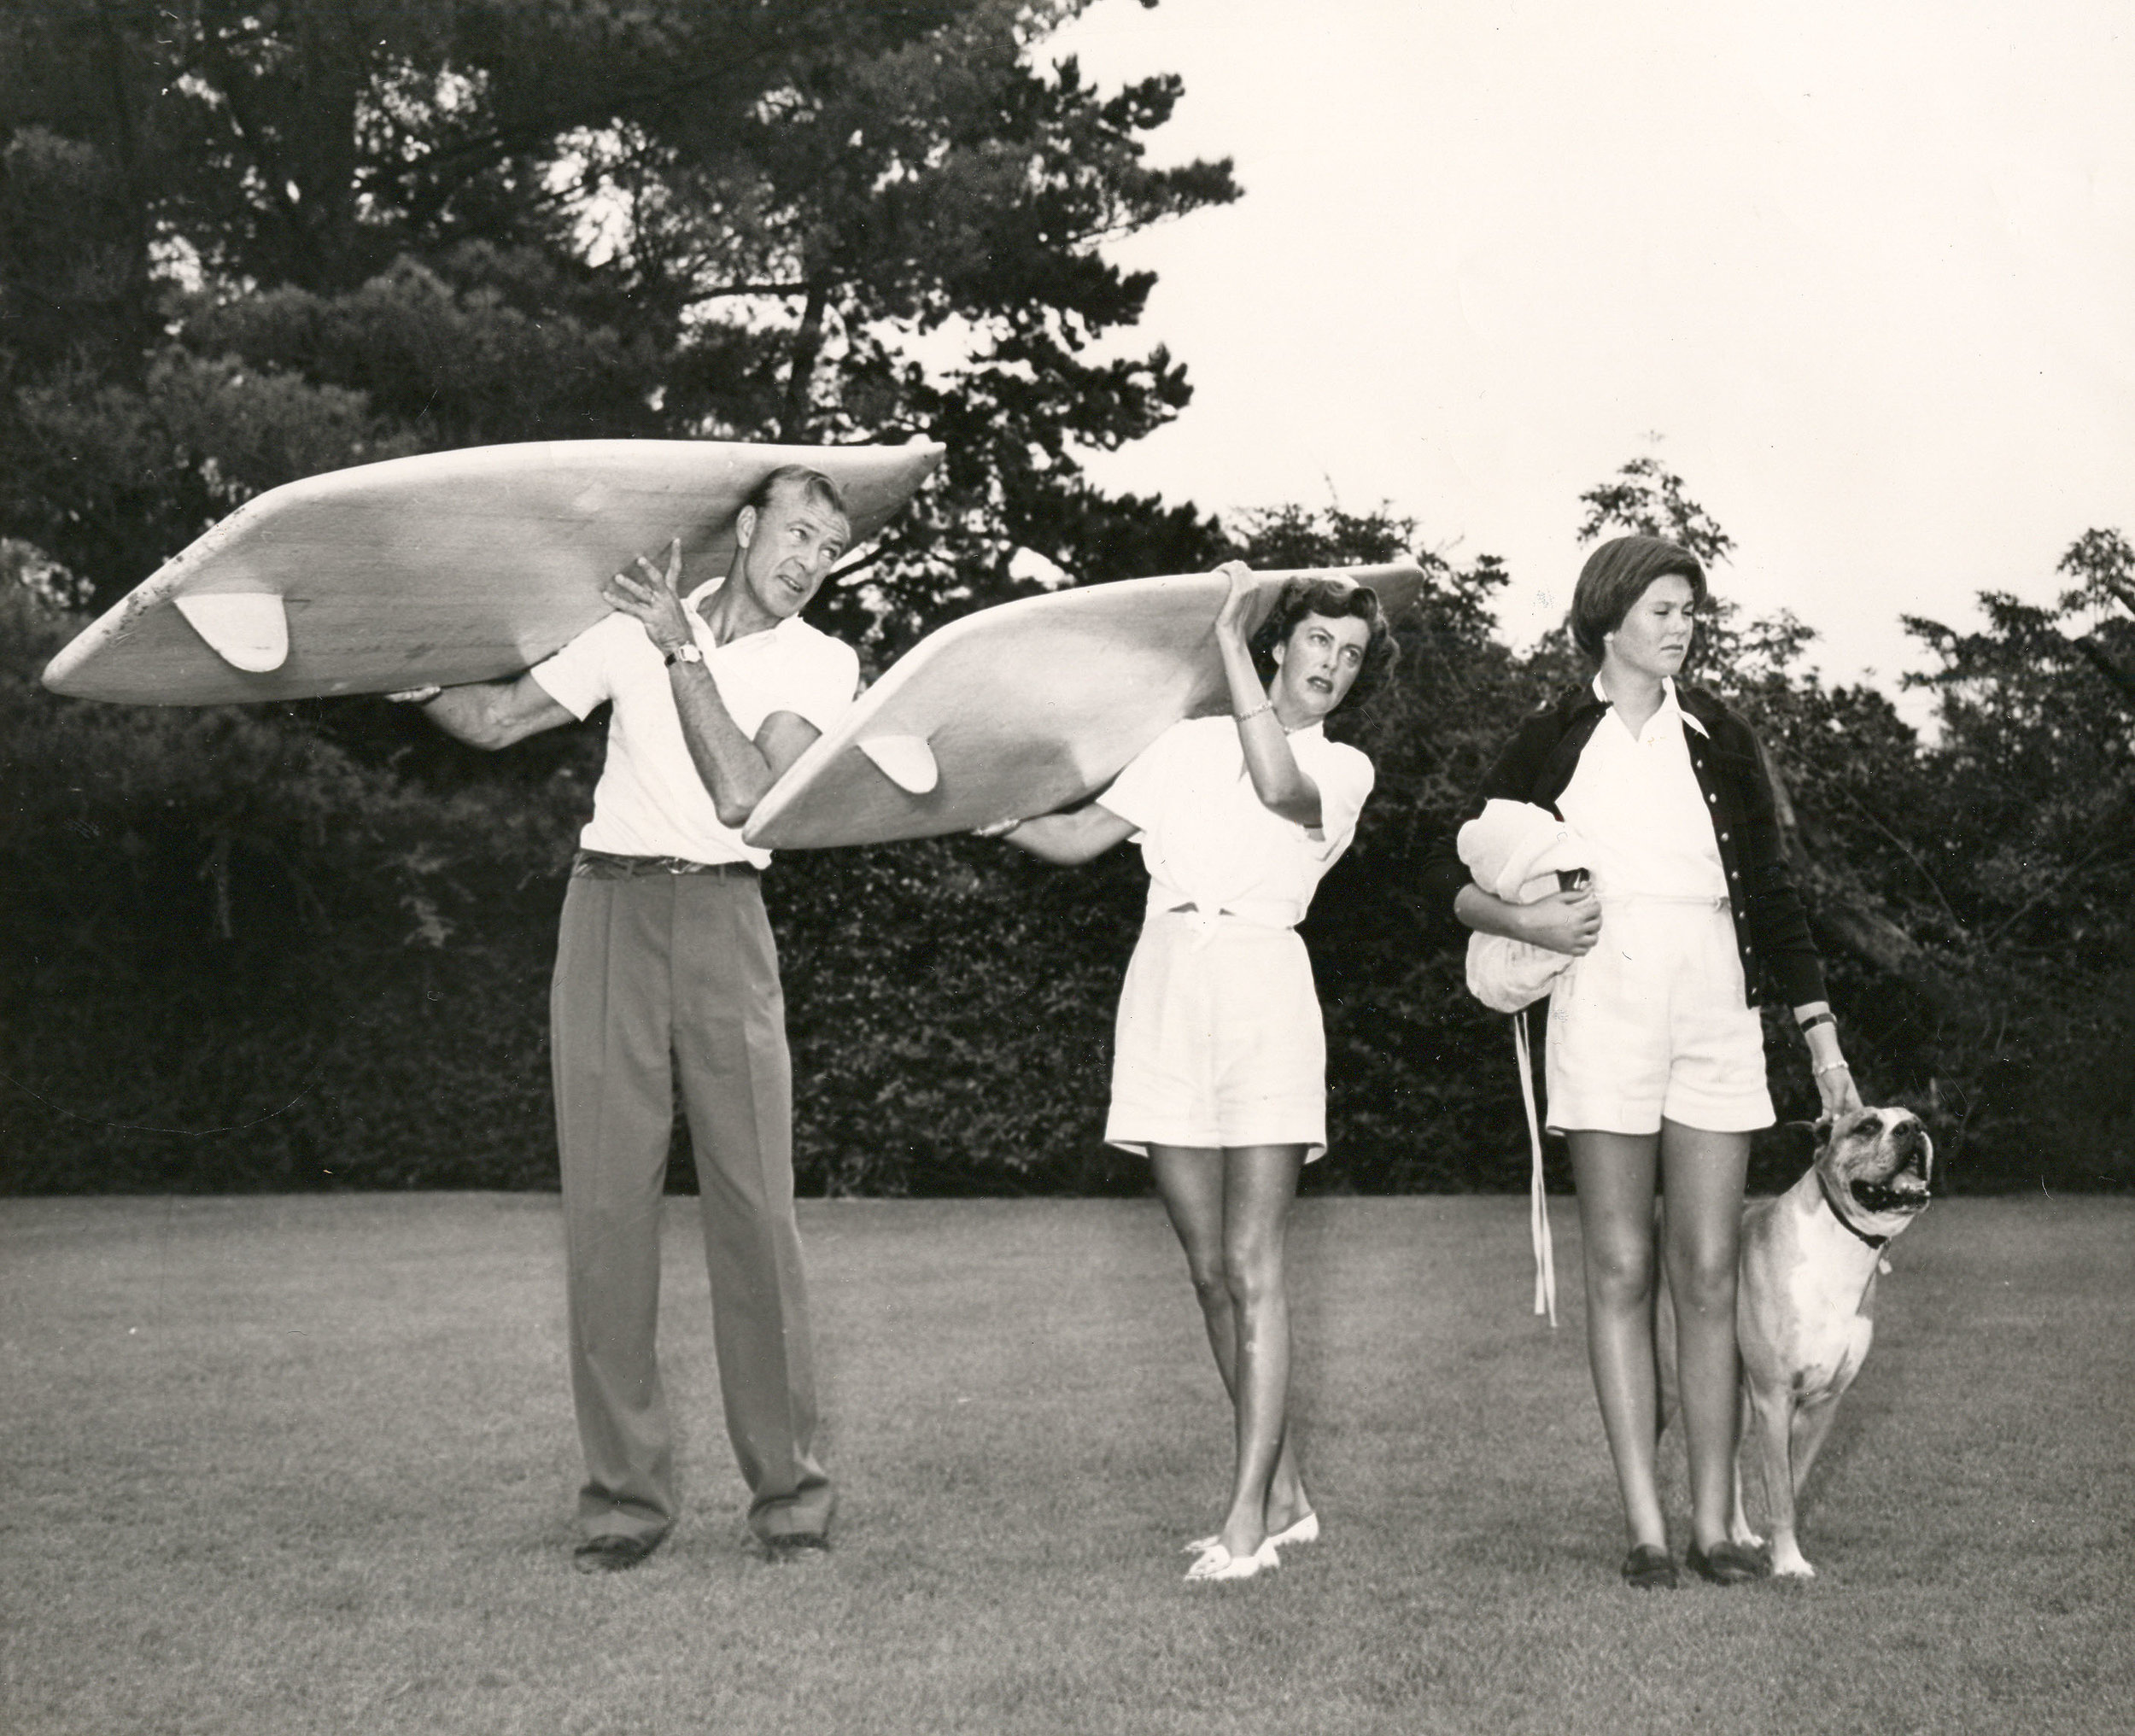 - My mother took up surfing guided by her buddy English actor Peter Lawford. Through his young surfing friends who developed the lightweight fiberglass smaller surfboards, we all were able to carry this new era of surfing boards ourselves.